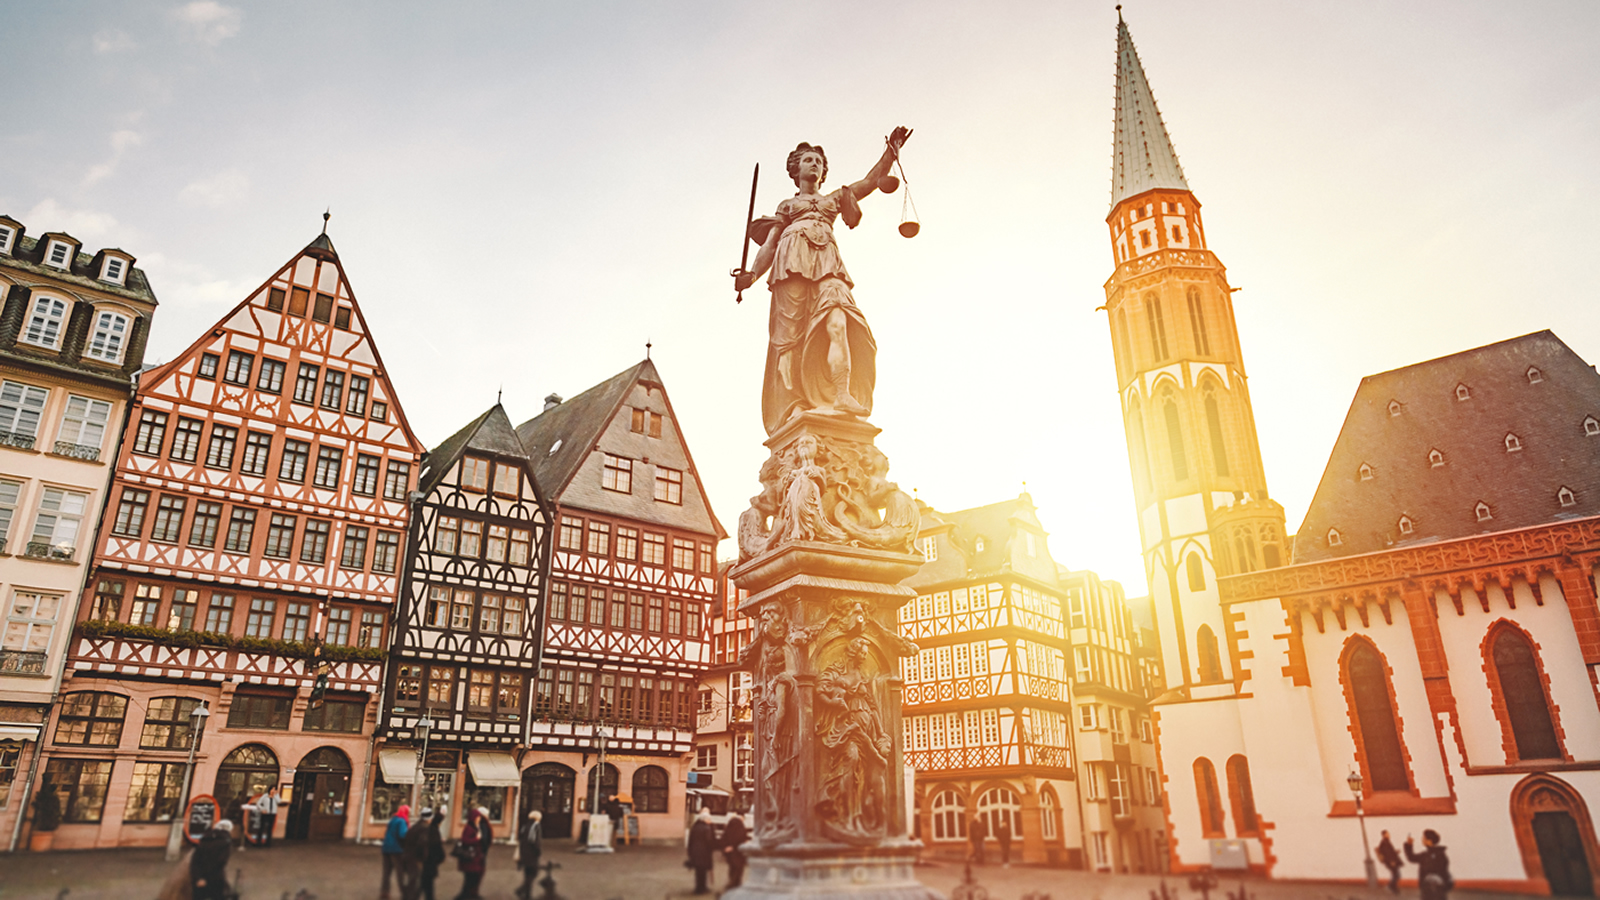 Town Square with Church and Lady Justice Statue in Frankfurt, Germany